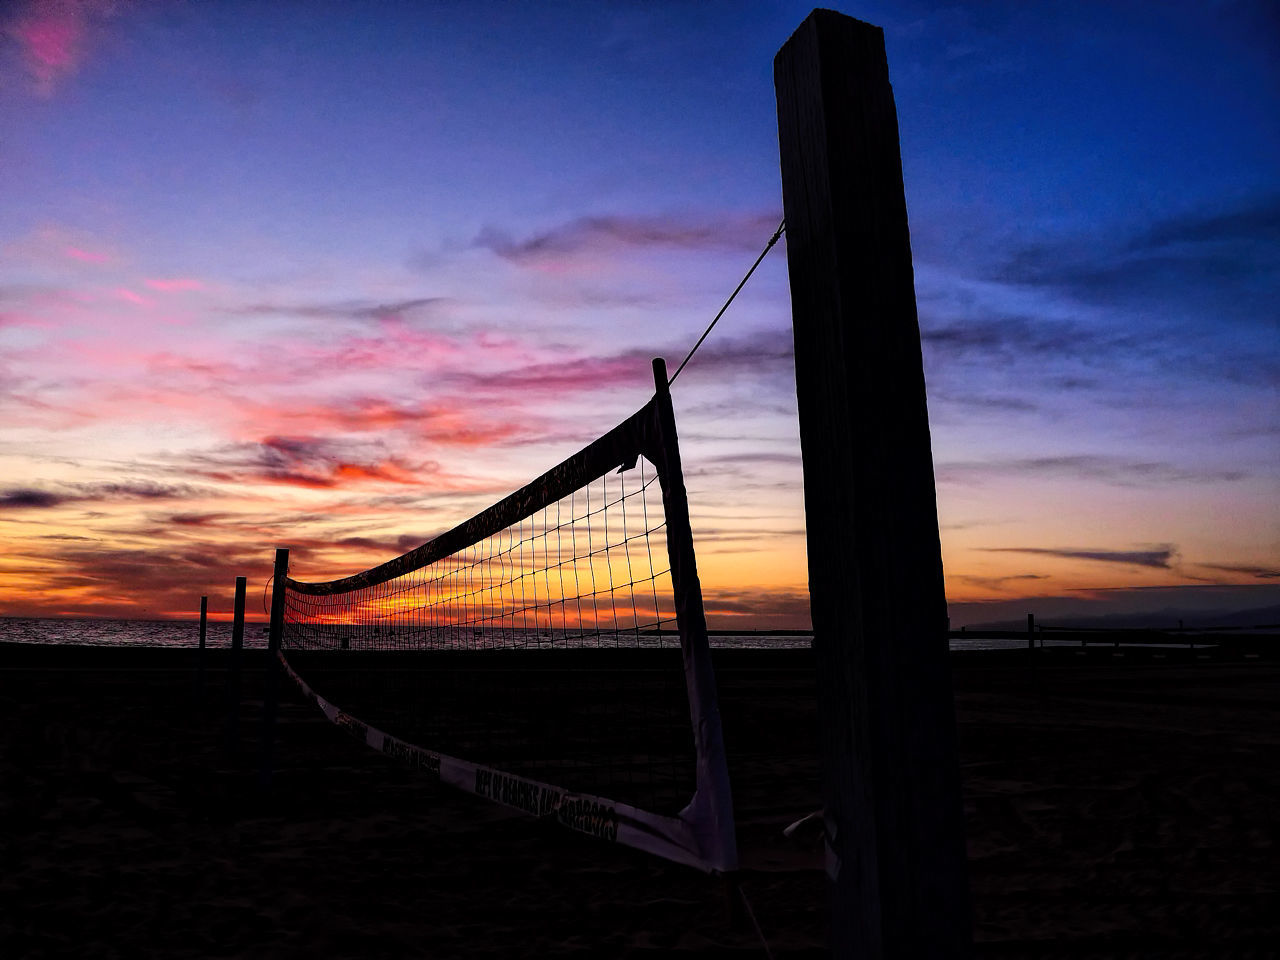 Sunset Beach Volleyball Atmosphere Beach Colorful Sky Dusk Outdoors Silhouette Sky Sunset Sunset Silhouettes Volleyball